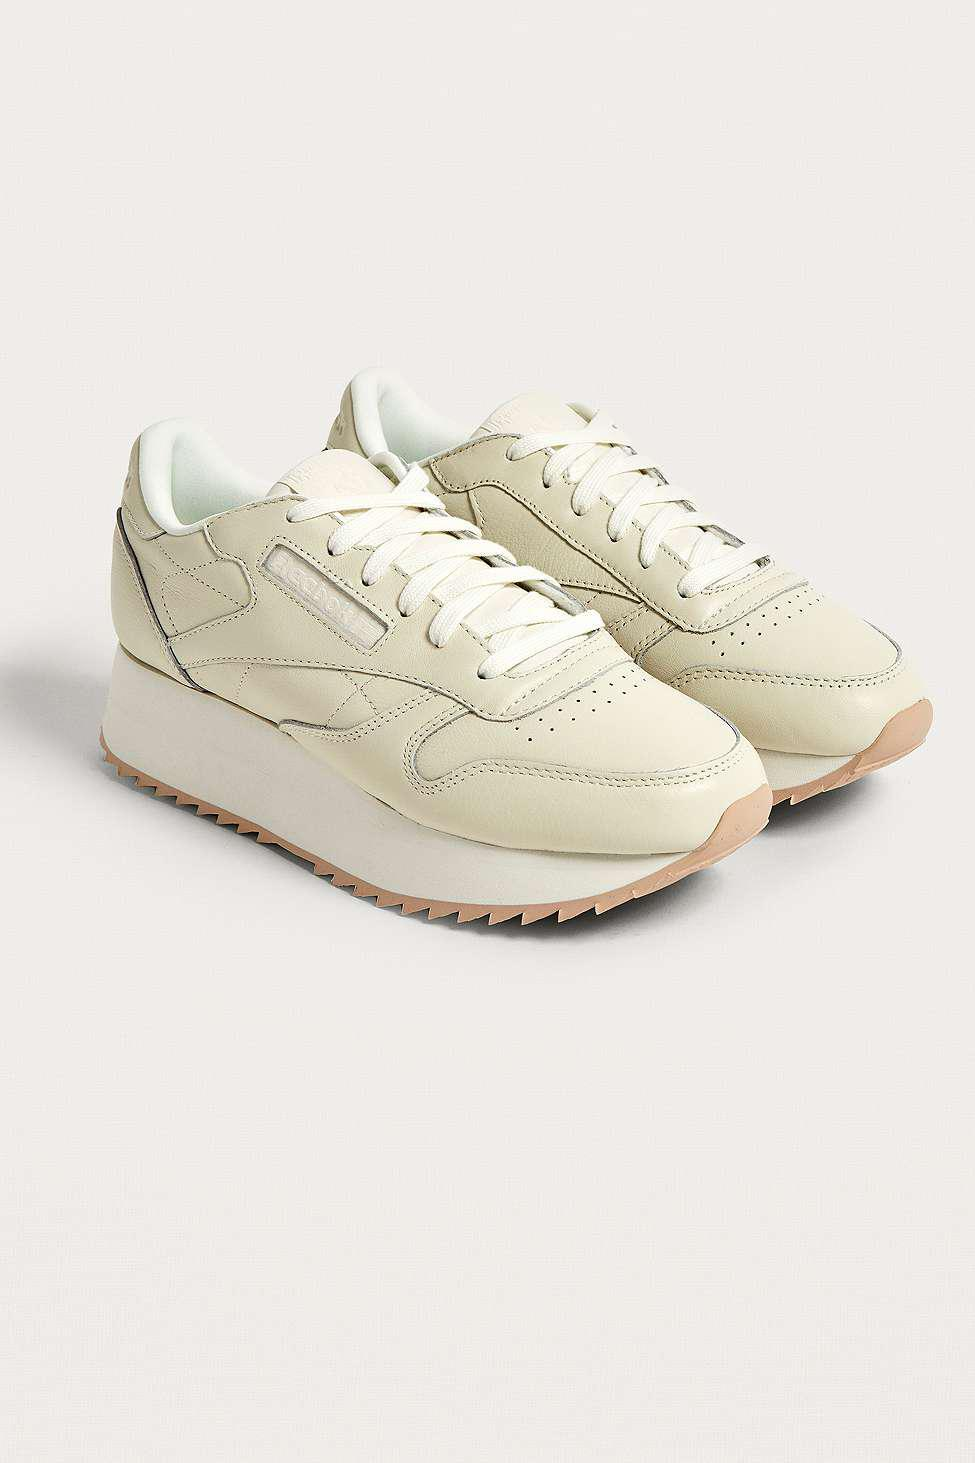 23454964b5e Reebok Classic Leather Double Trainers - Womens Uk 4 in White - Lyst